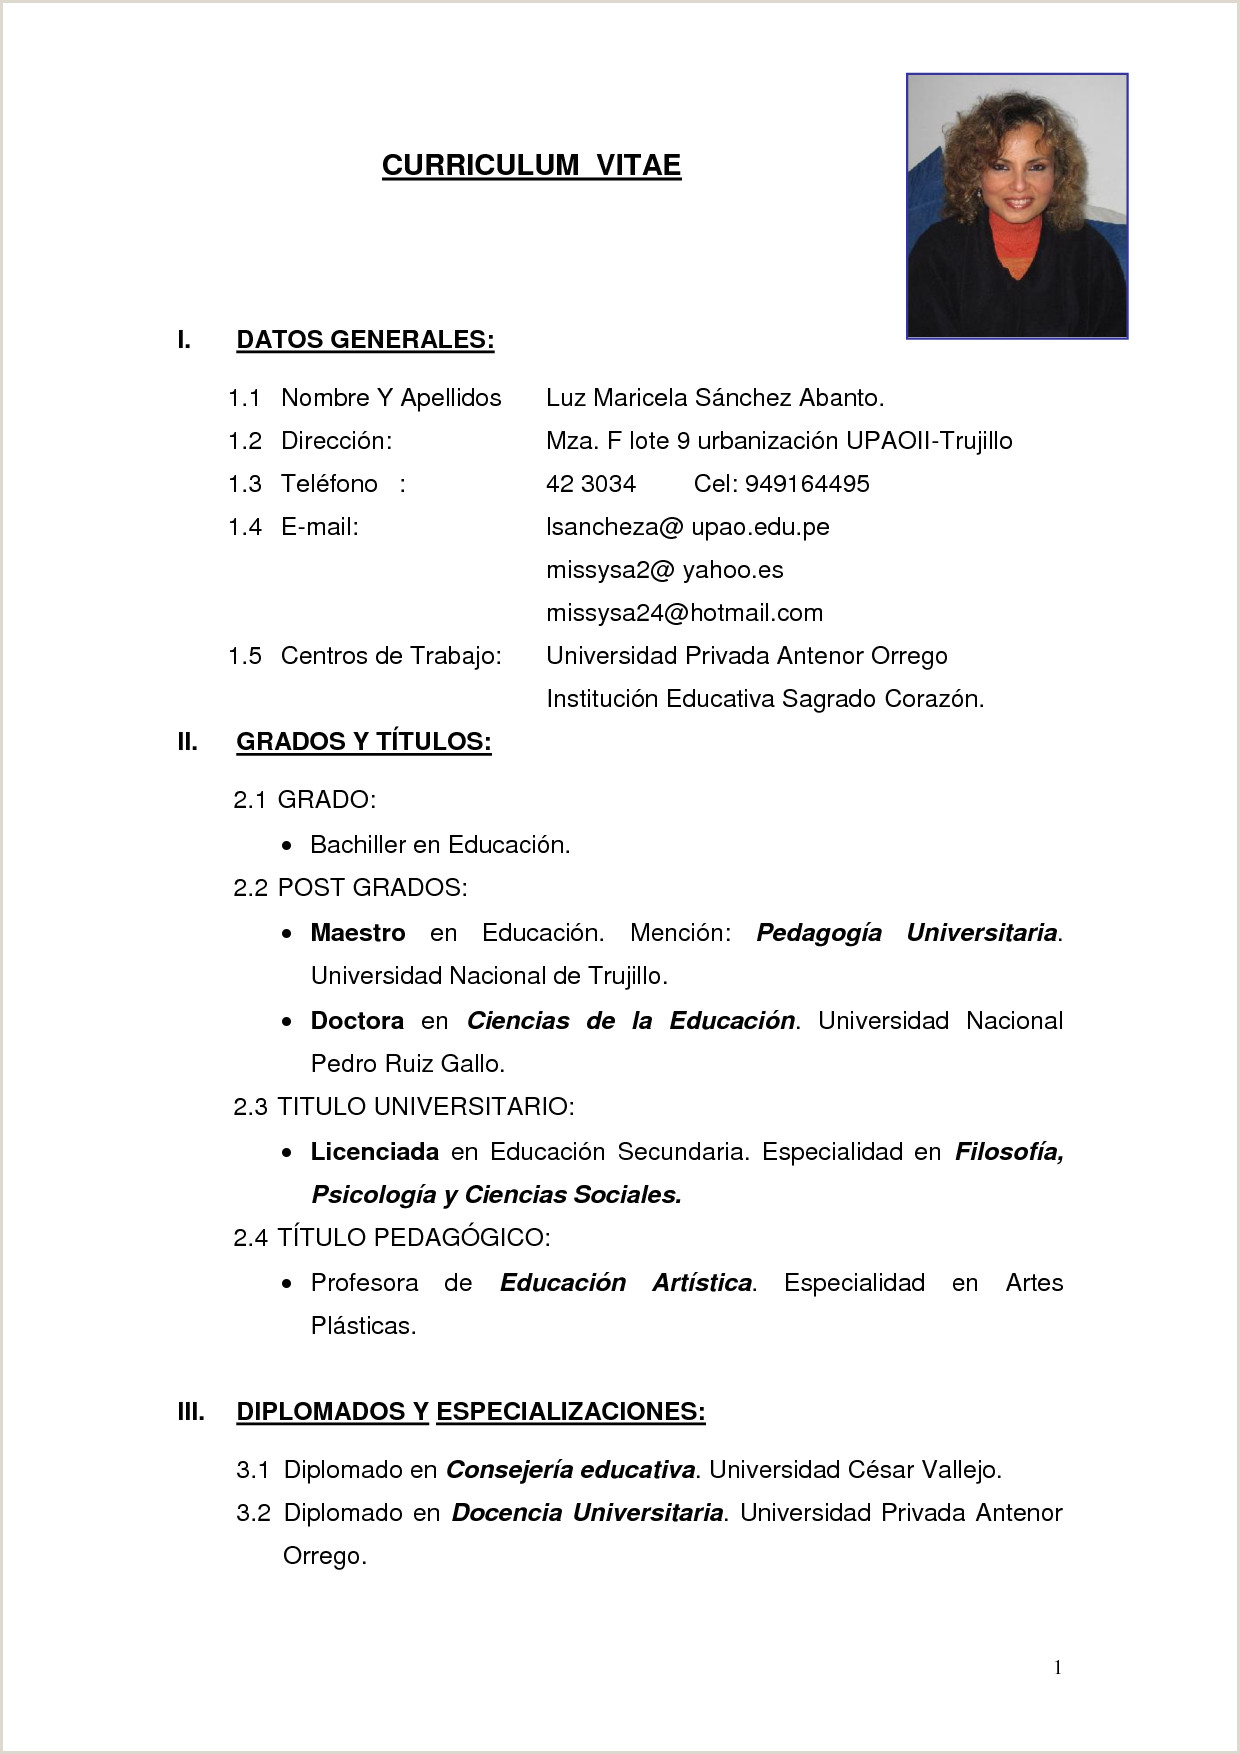 Restaurant Owner Job Description for Resume Modelo De Curriculum Vitae Resume Template